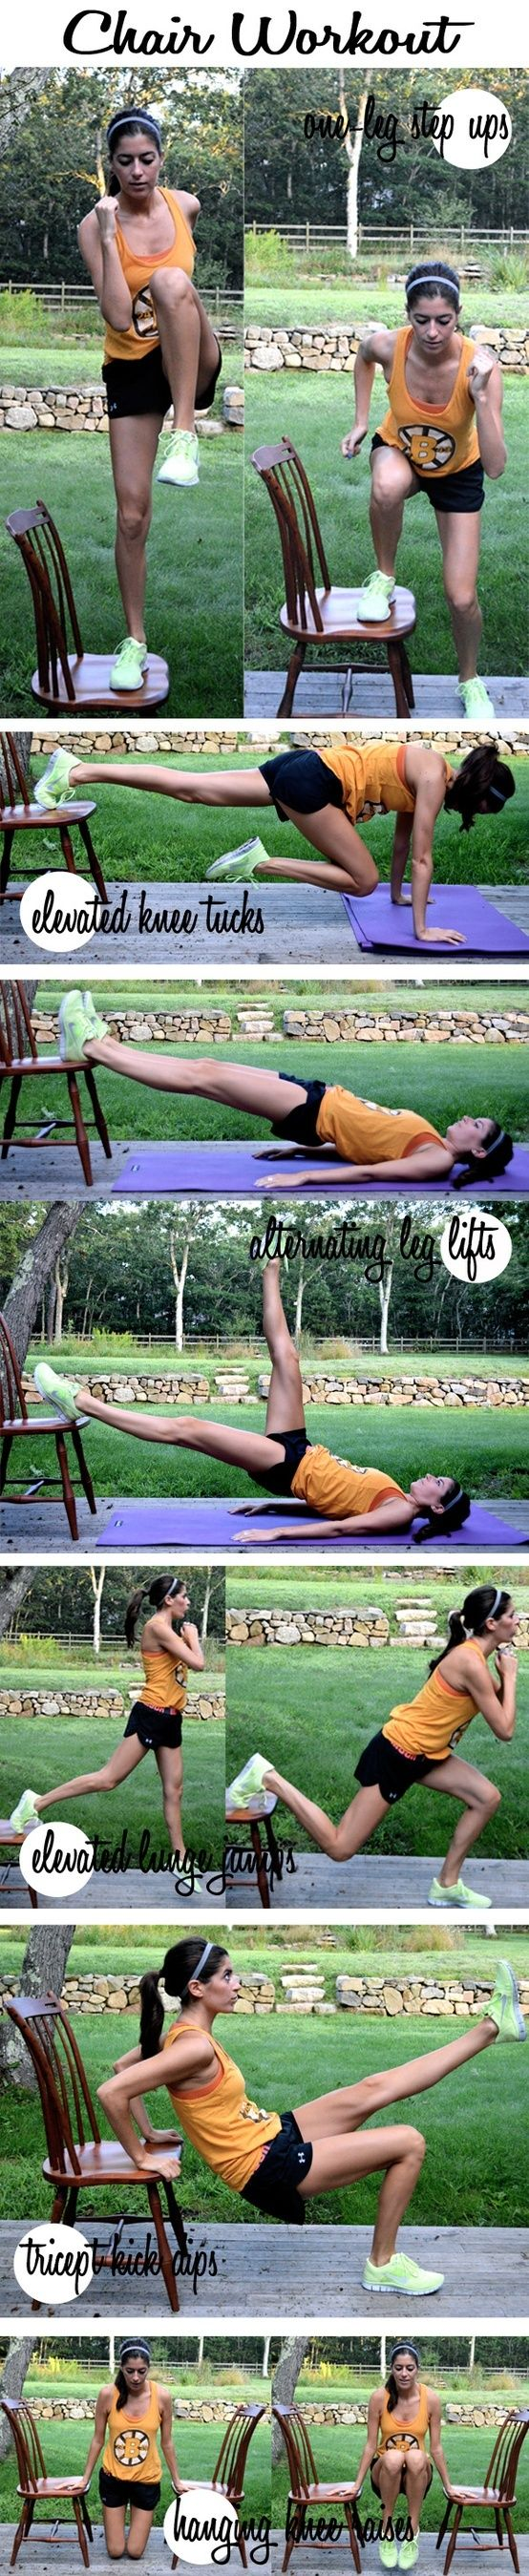 The Butt, Thigh, and Belly Workout: Fit into Your Skinny Jeans in 4 Weeks.